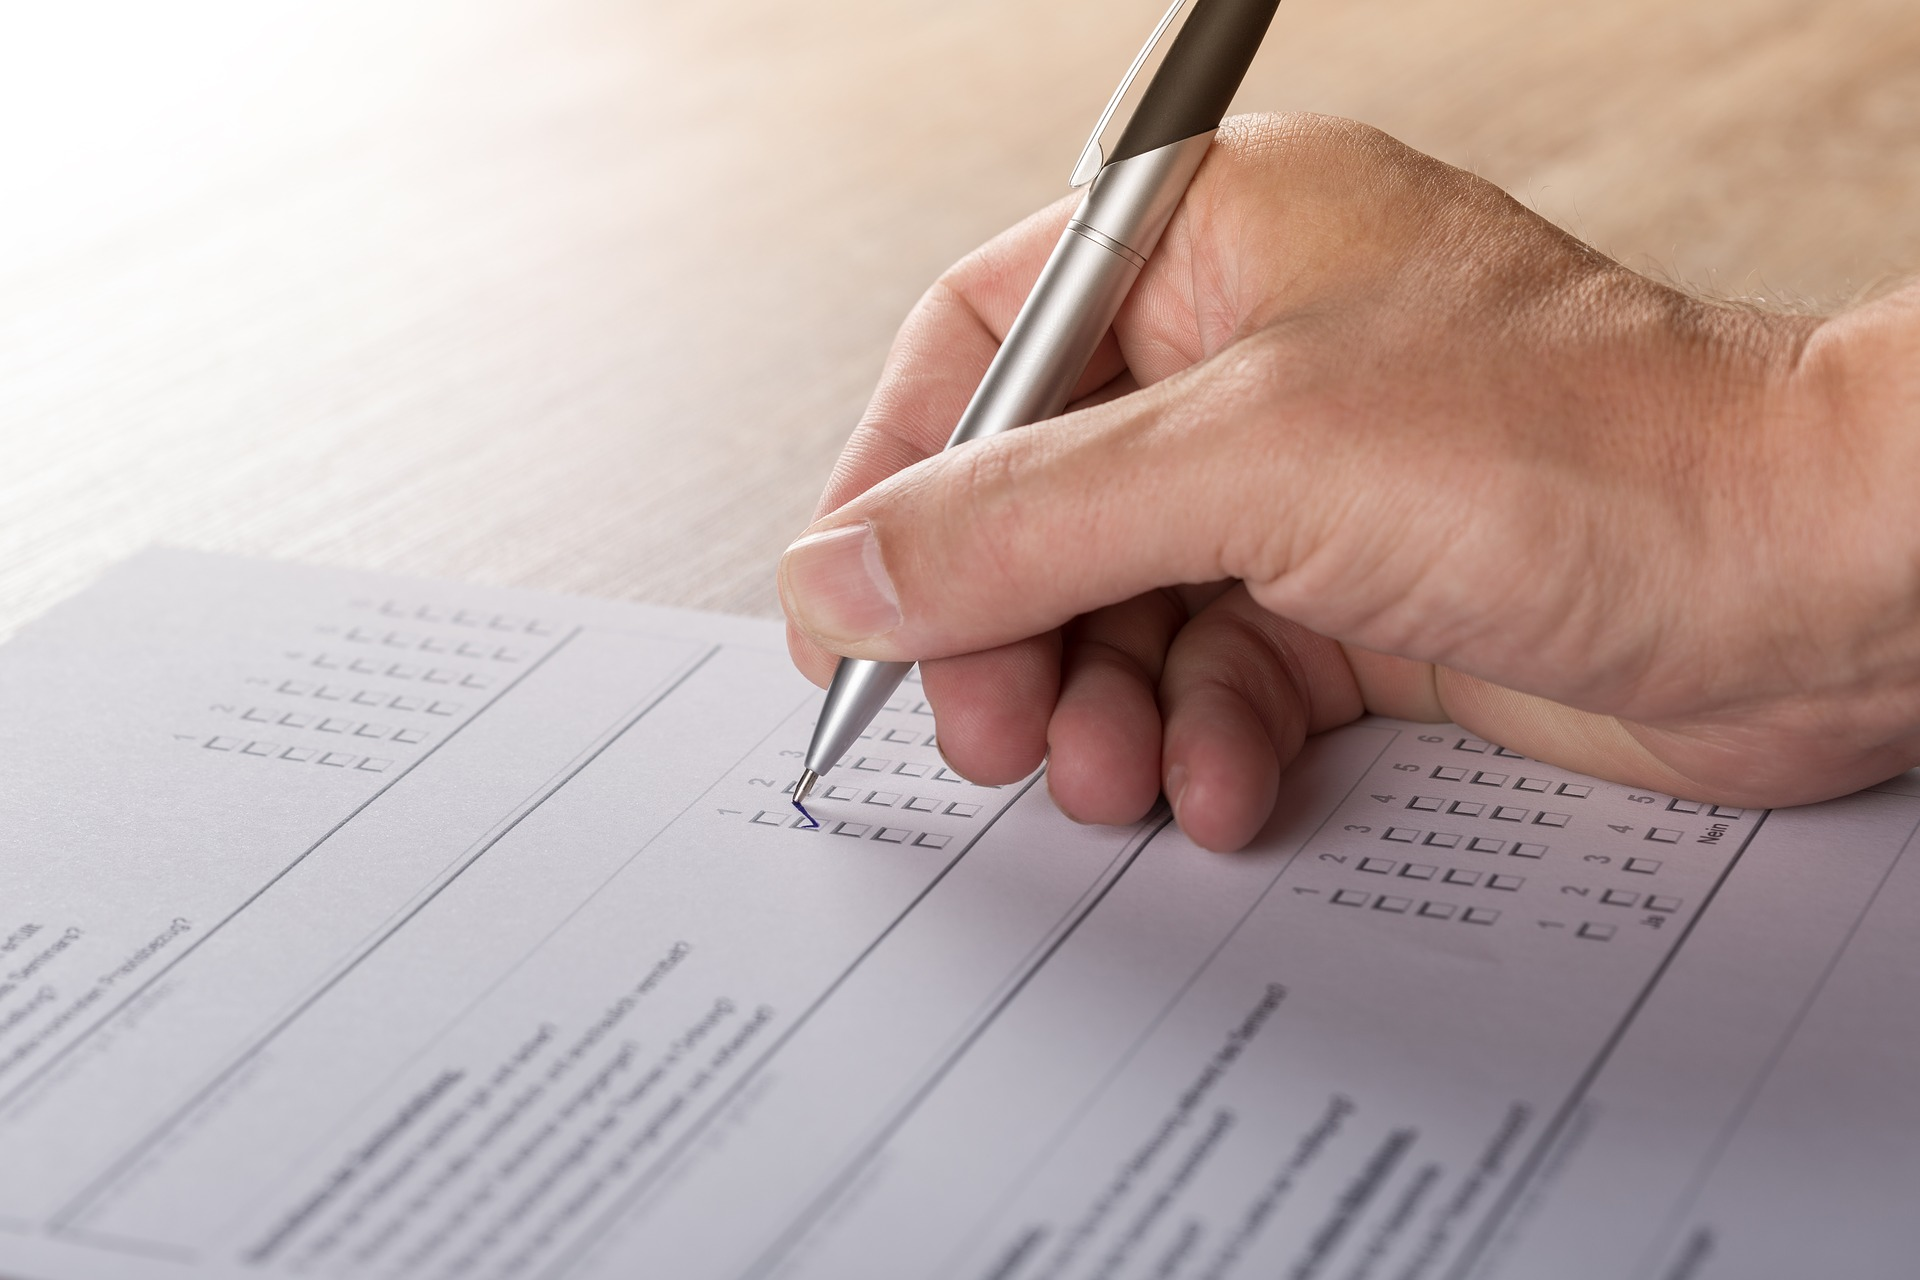 - Lincoln County Health Department is an official Voter Registration site. Registration is available during regular business hours, 8 a.m. to 4:30 p.m., Monday through Friday, except holidays.For more information or to download a registration form, please visit the website for the Lincoln County Clerk's Office.